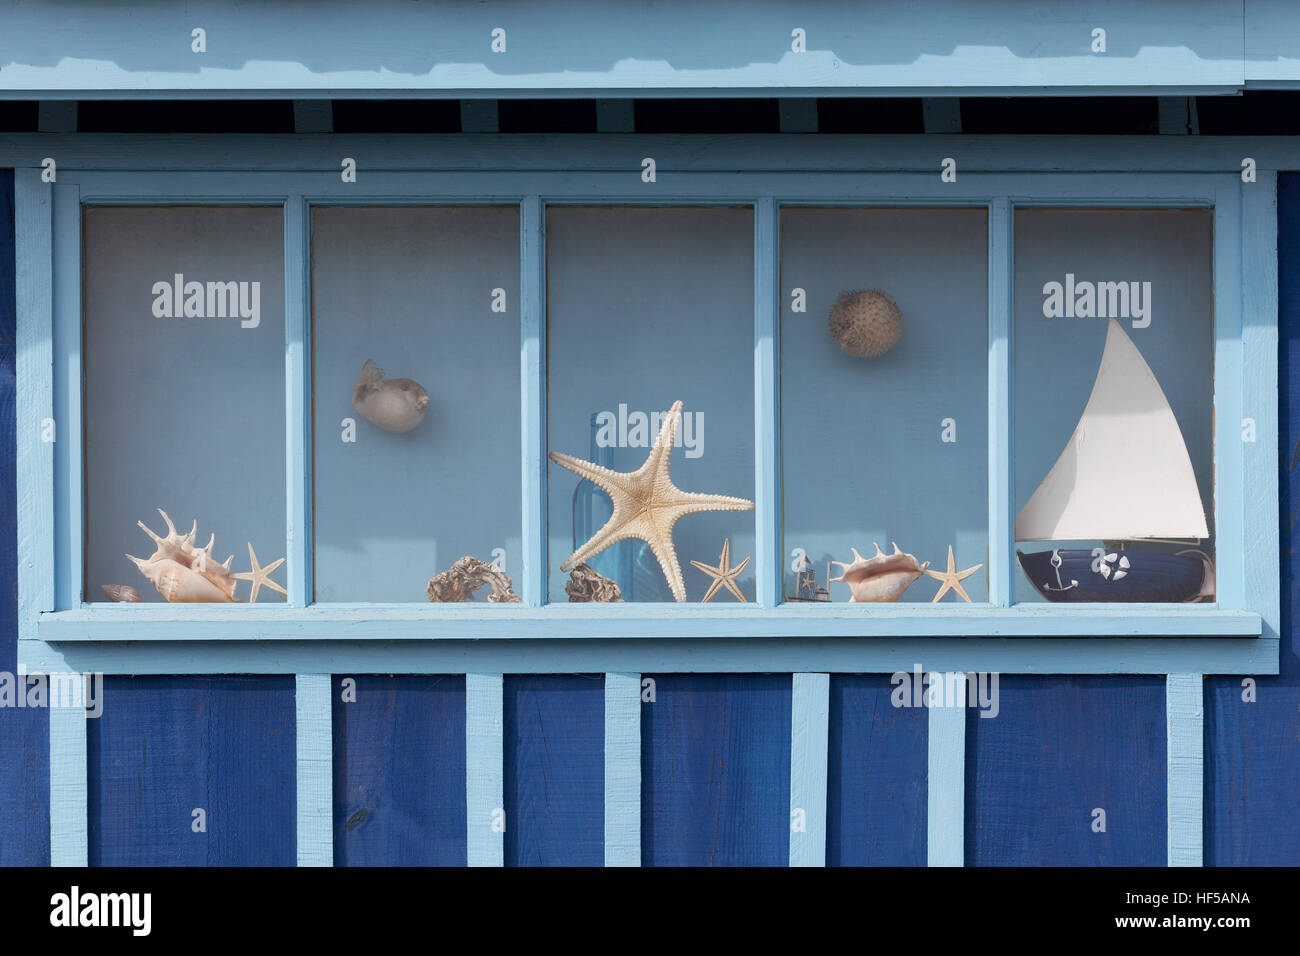 Window with starfish and maritime decorations on a fisherman's hut, Le Site ostréicole et naturel de Fort - Stock Image